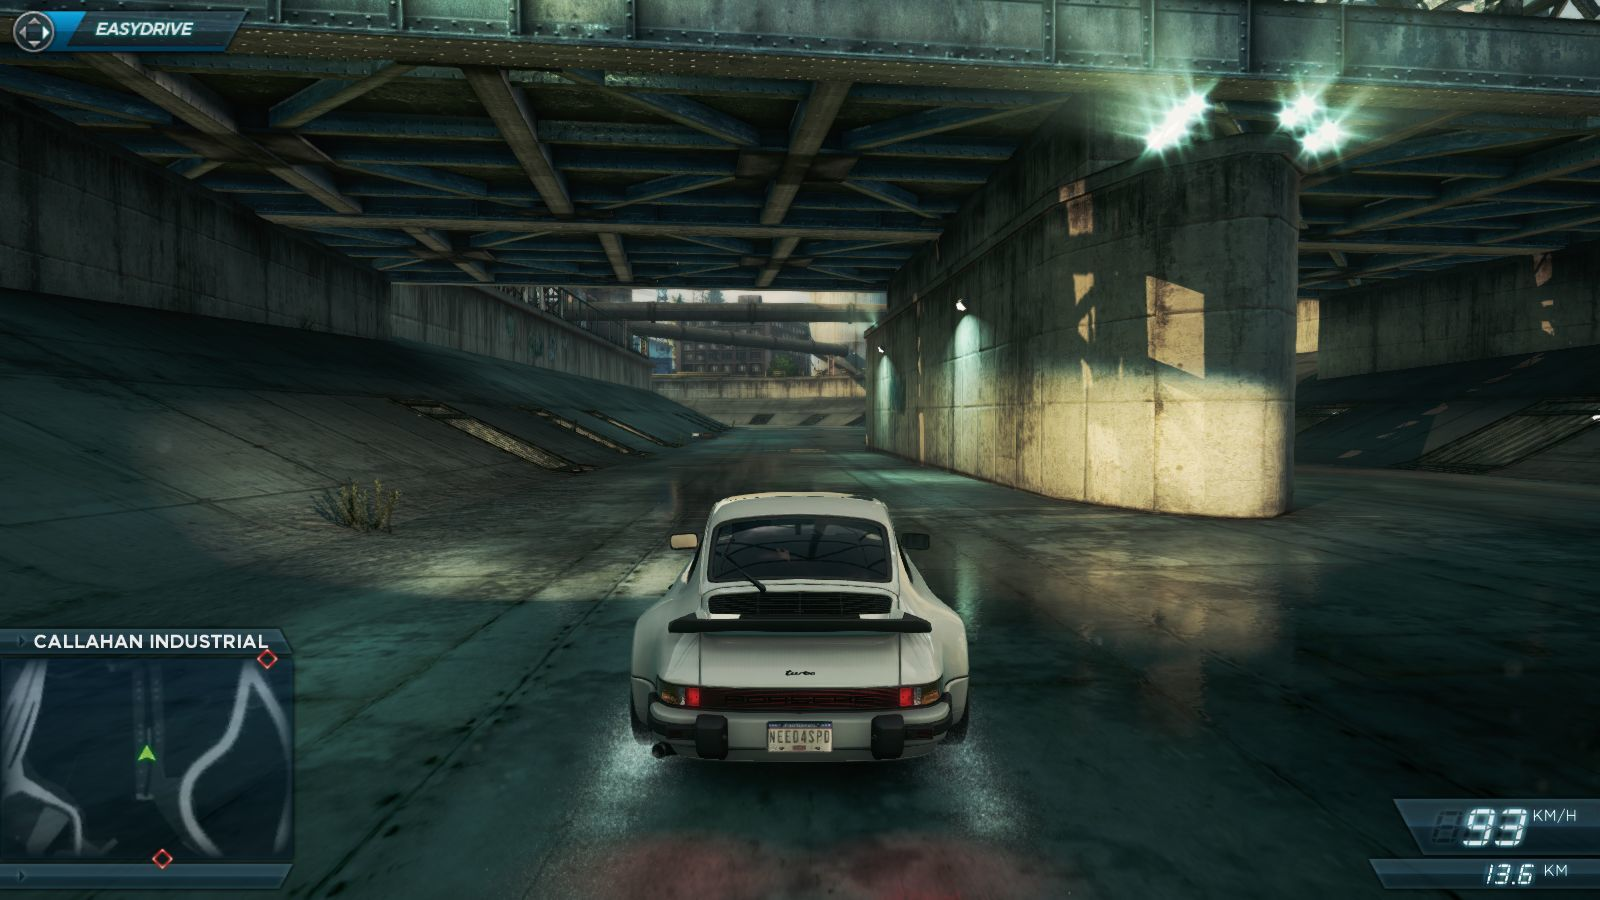 download need for speed most wanted 2012 full version free